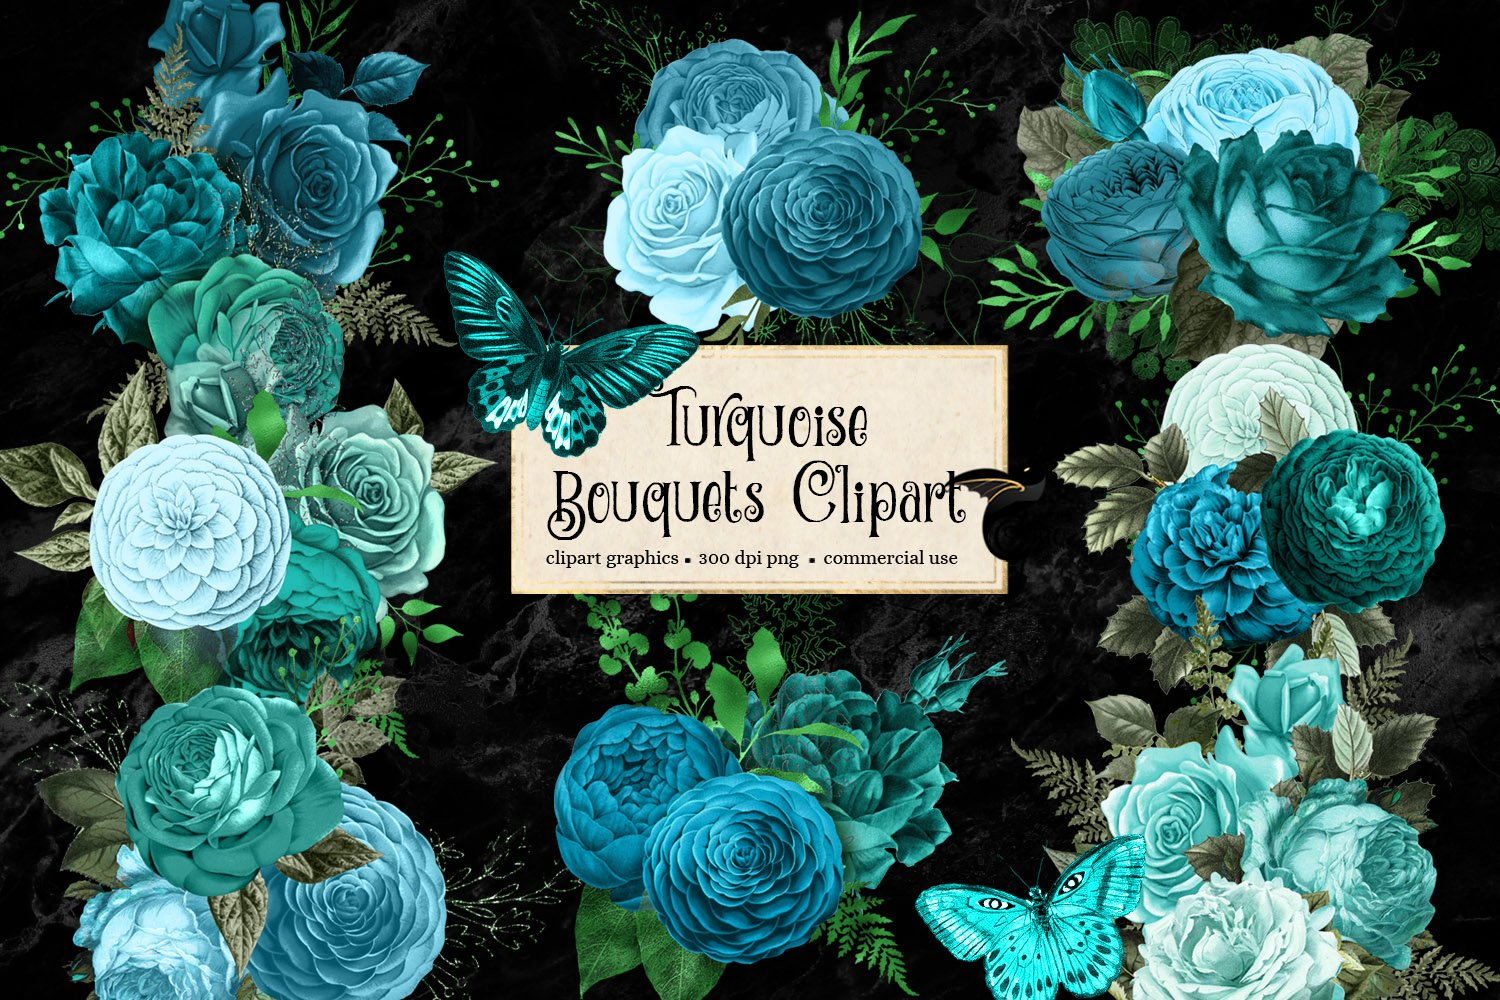 Turquoise Bouquets Clipart example image 1